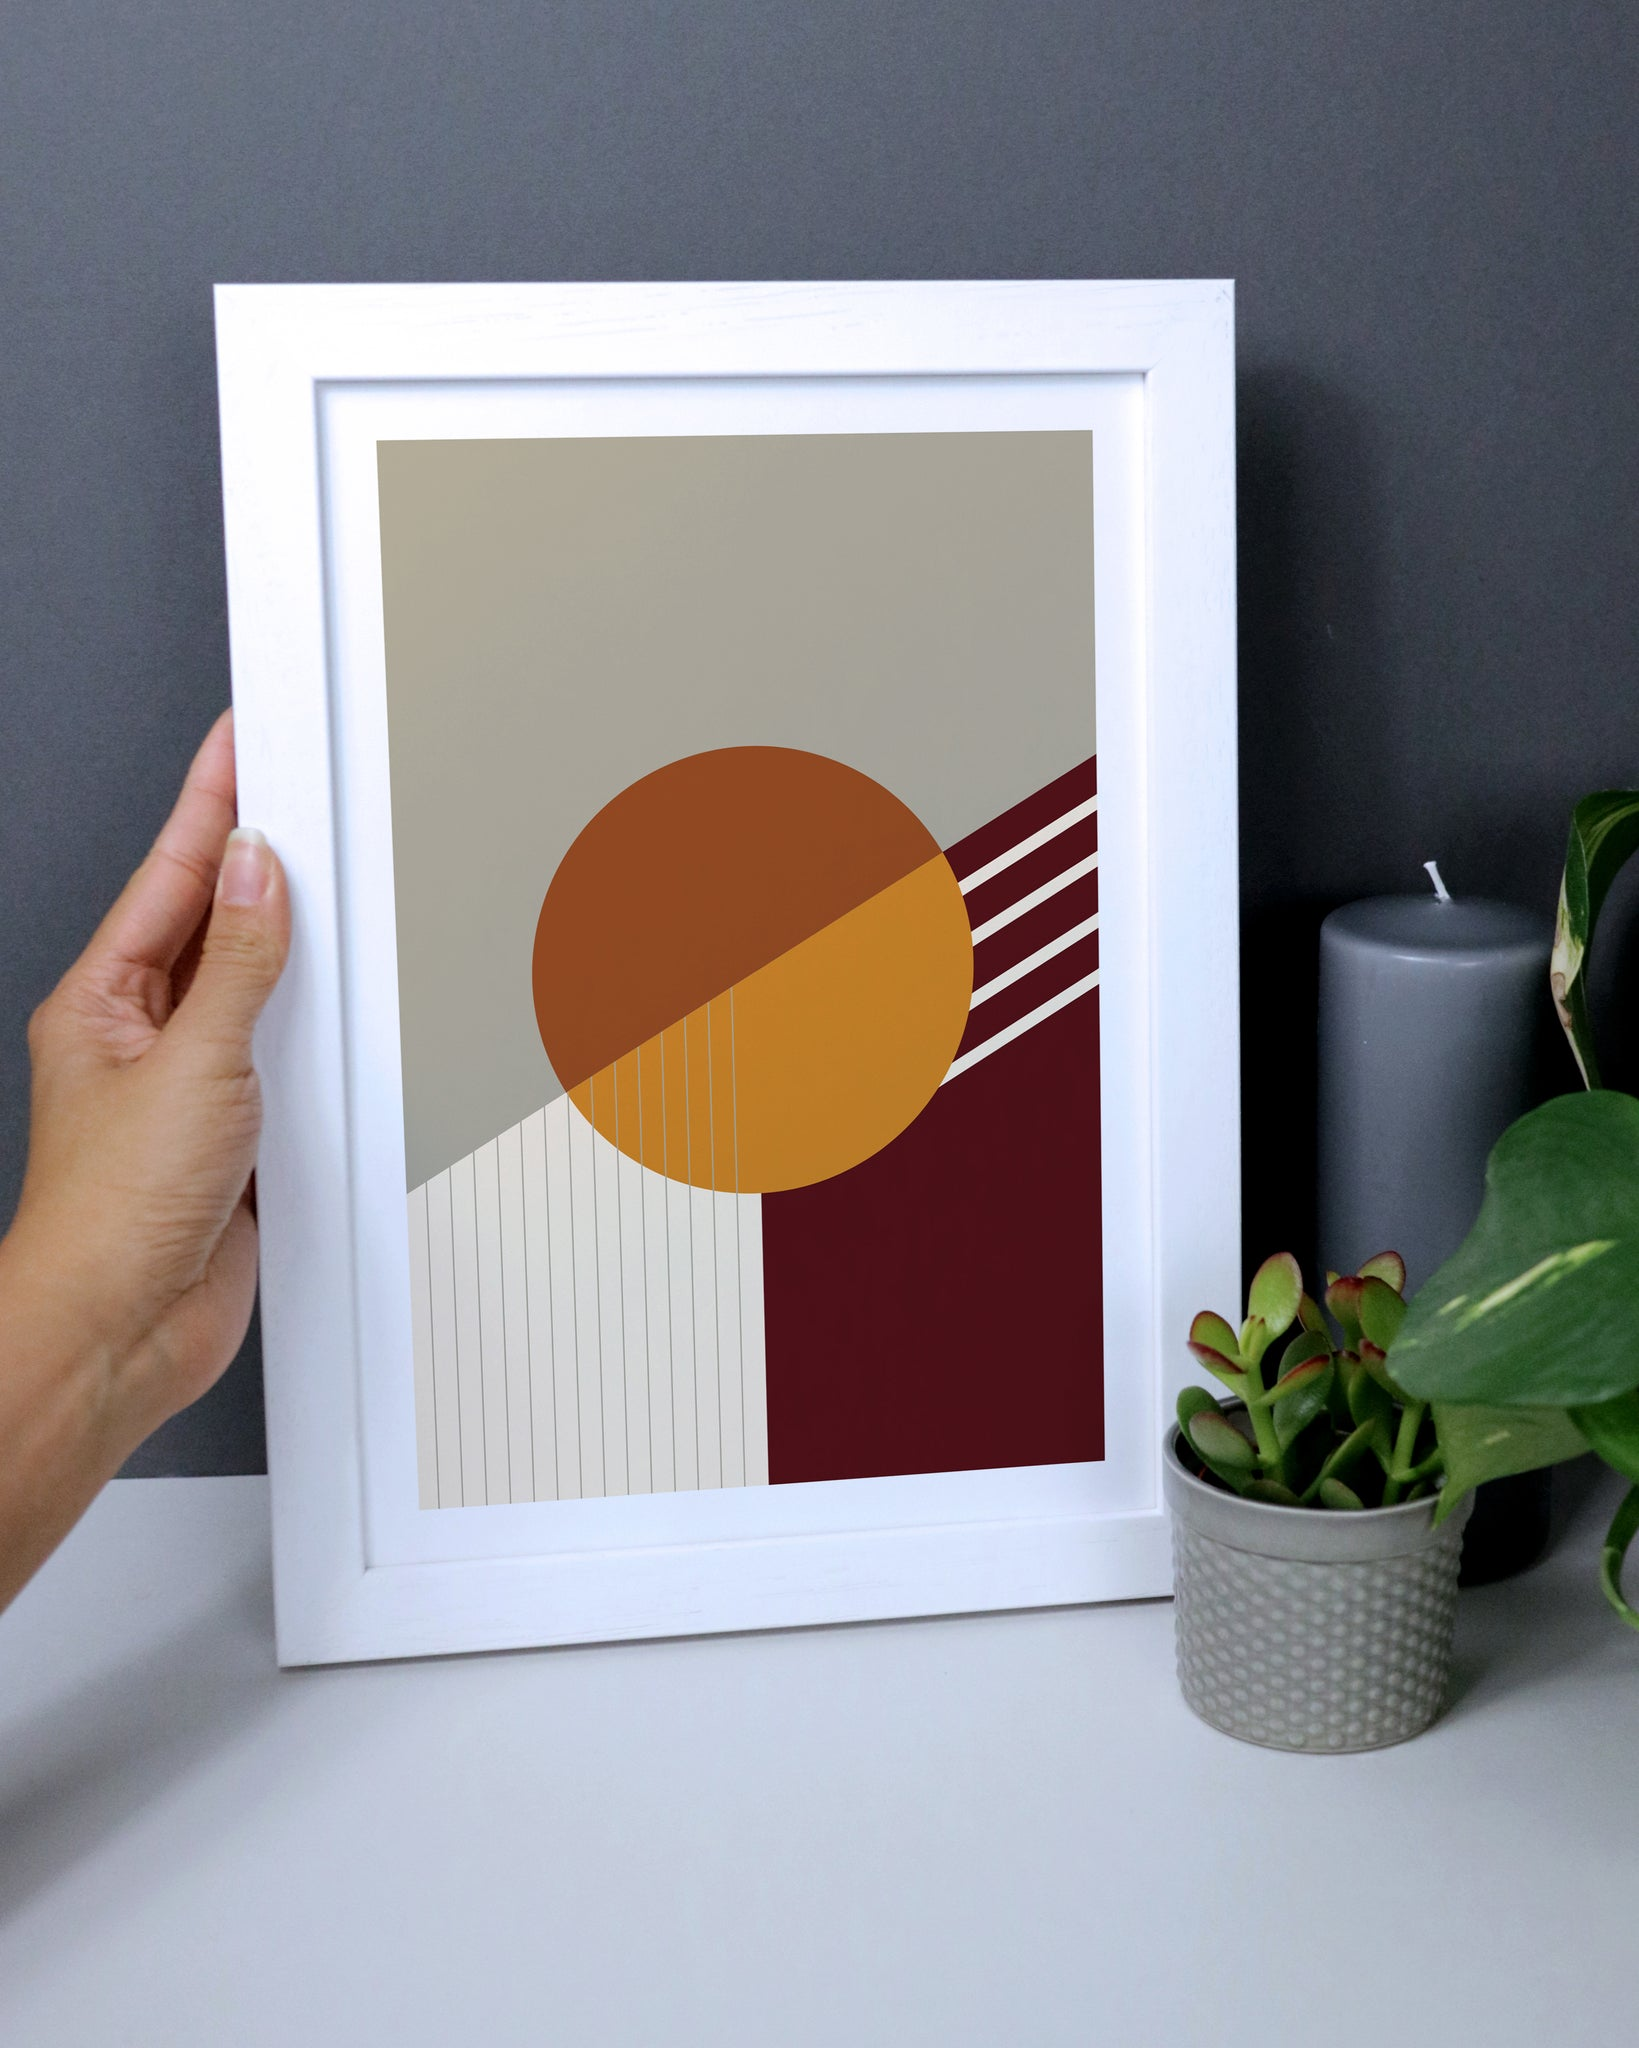 Abstract Geometric Print In Orange Earth Tones